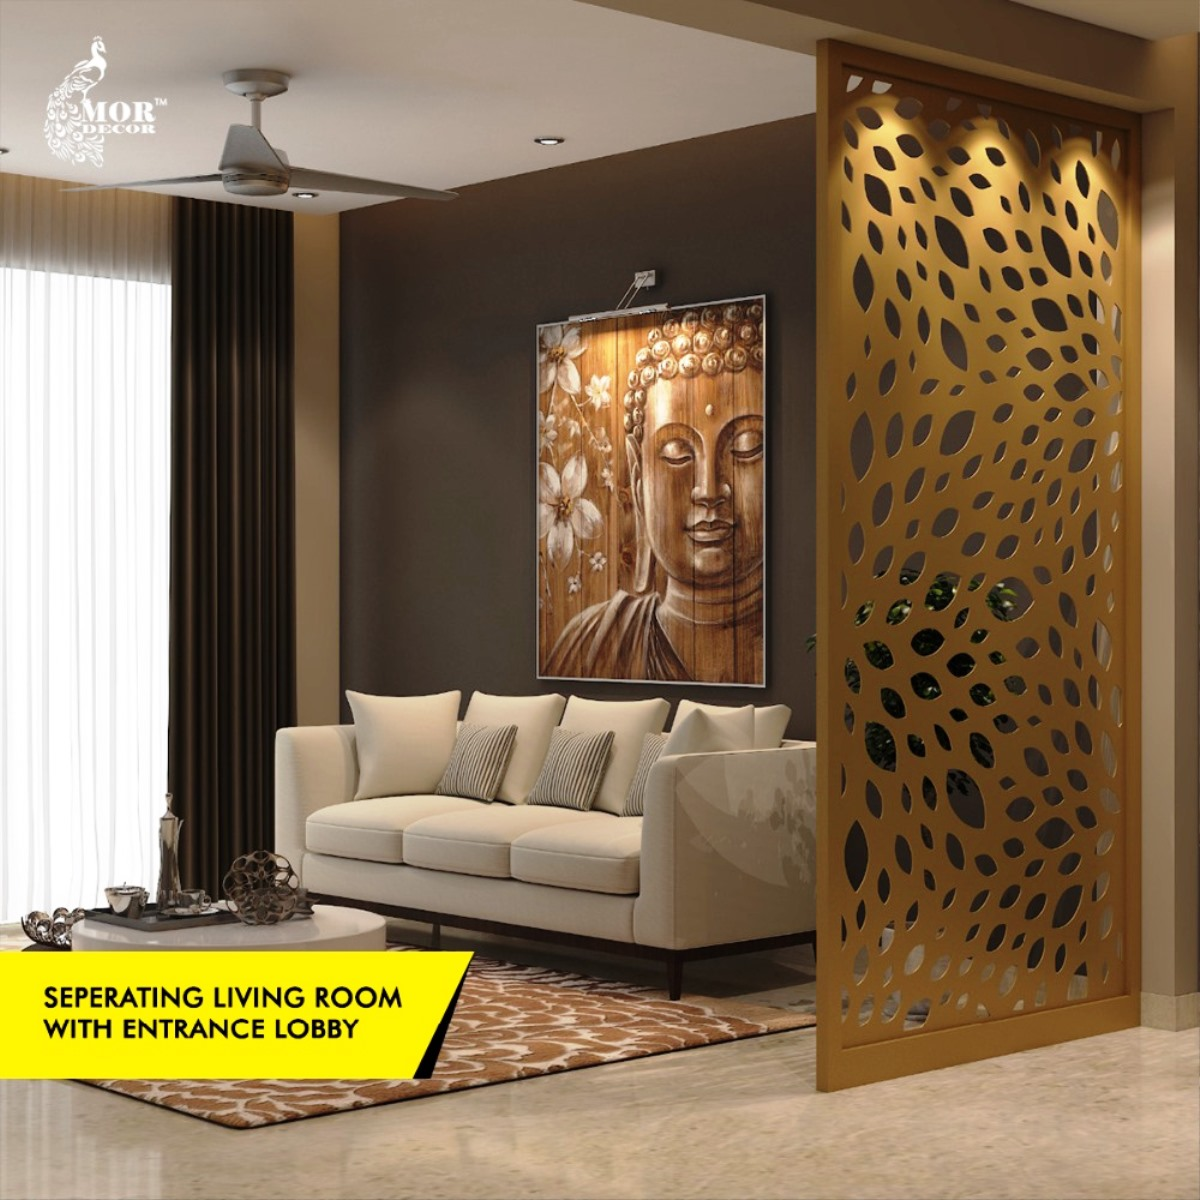 Cnc Designs जालि डिजाइनहरू For Room Partitions